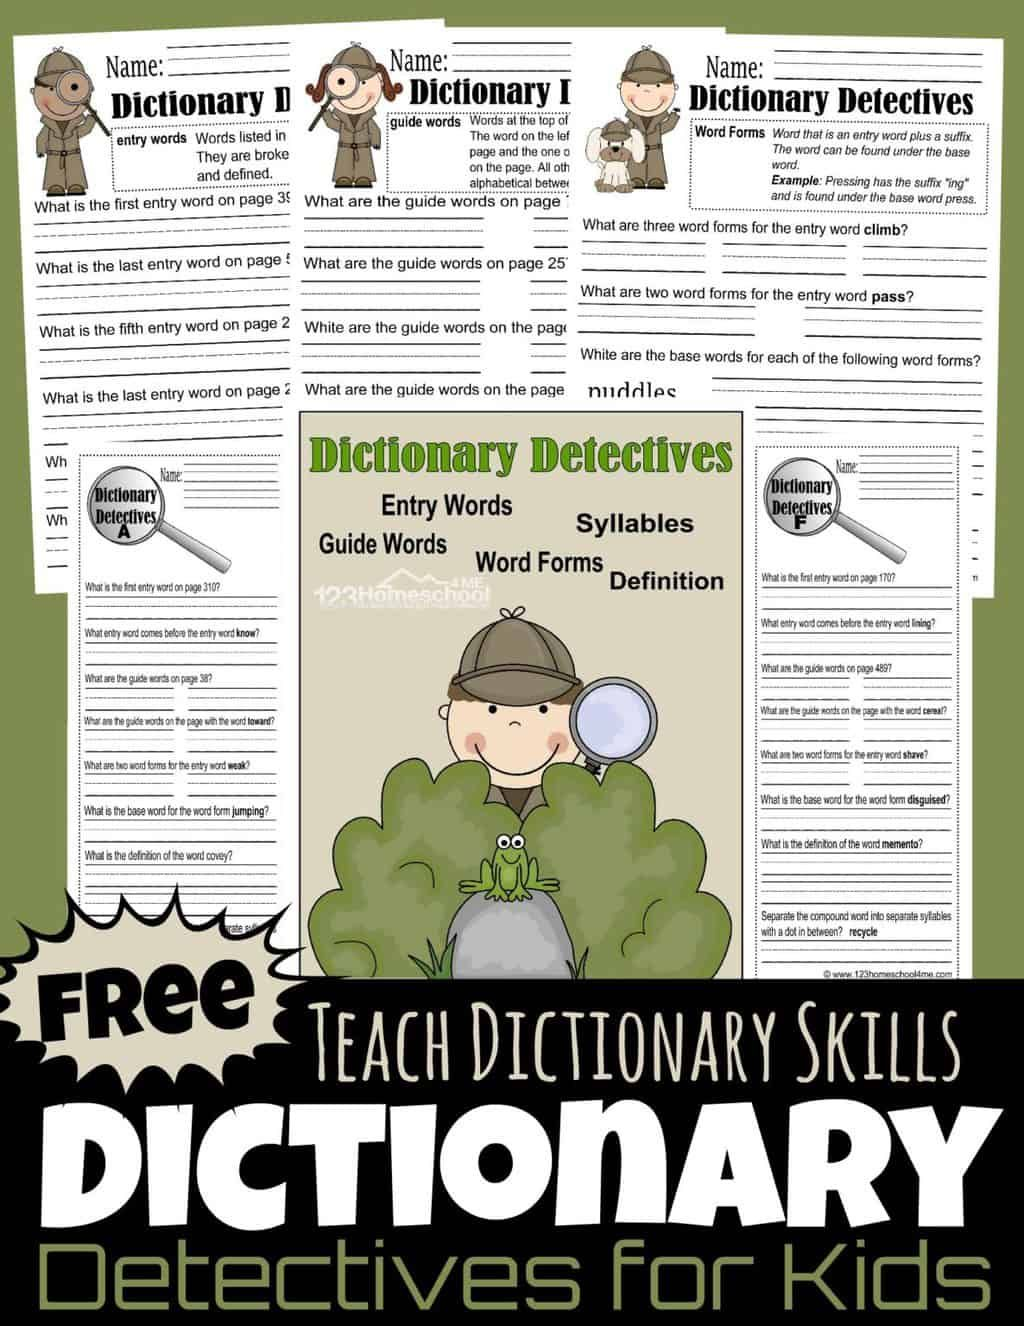 FREE Dictionary Detective Worksheets for Kids   Dictionary skills [ 1326 x 1024 Pixel ]